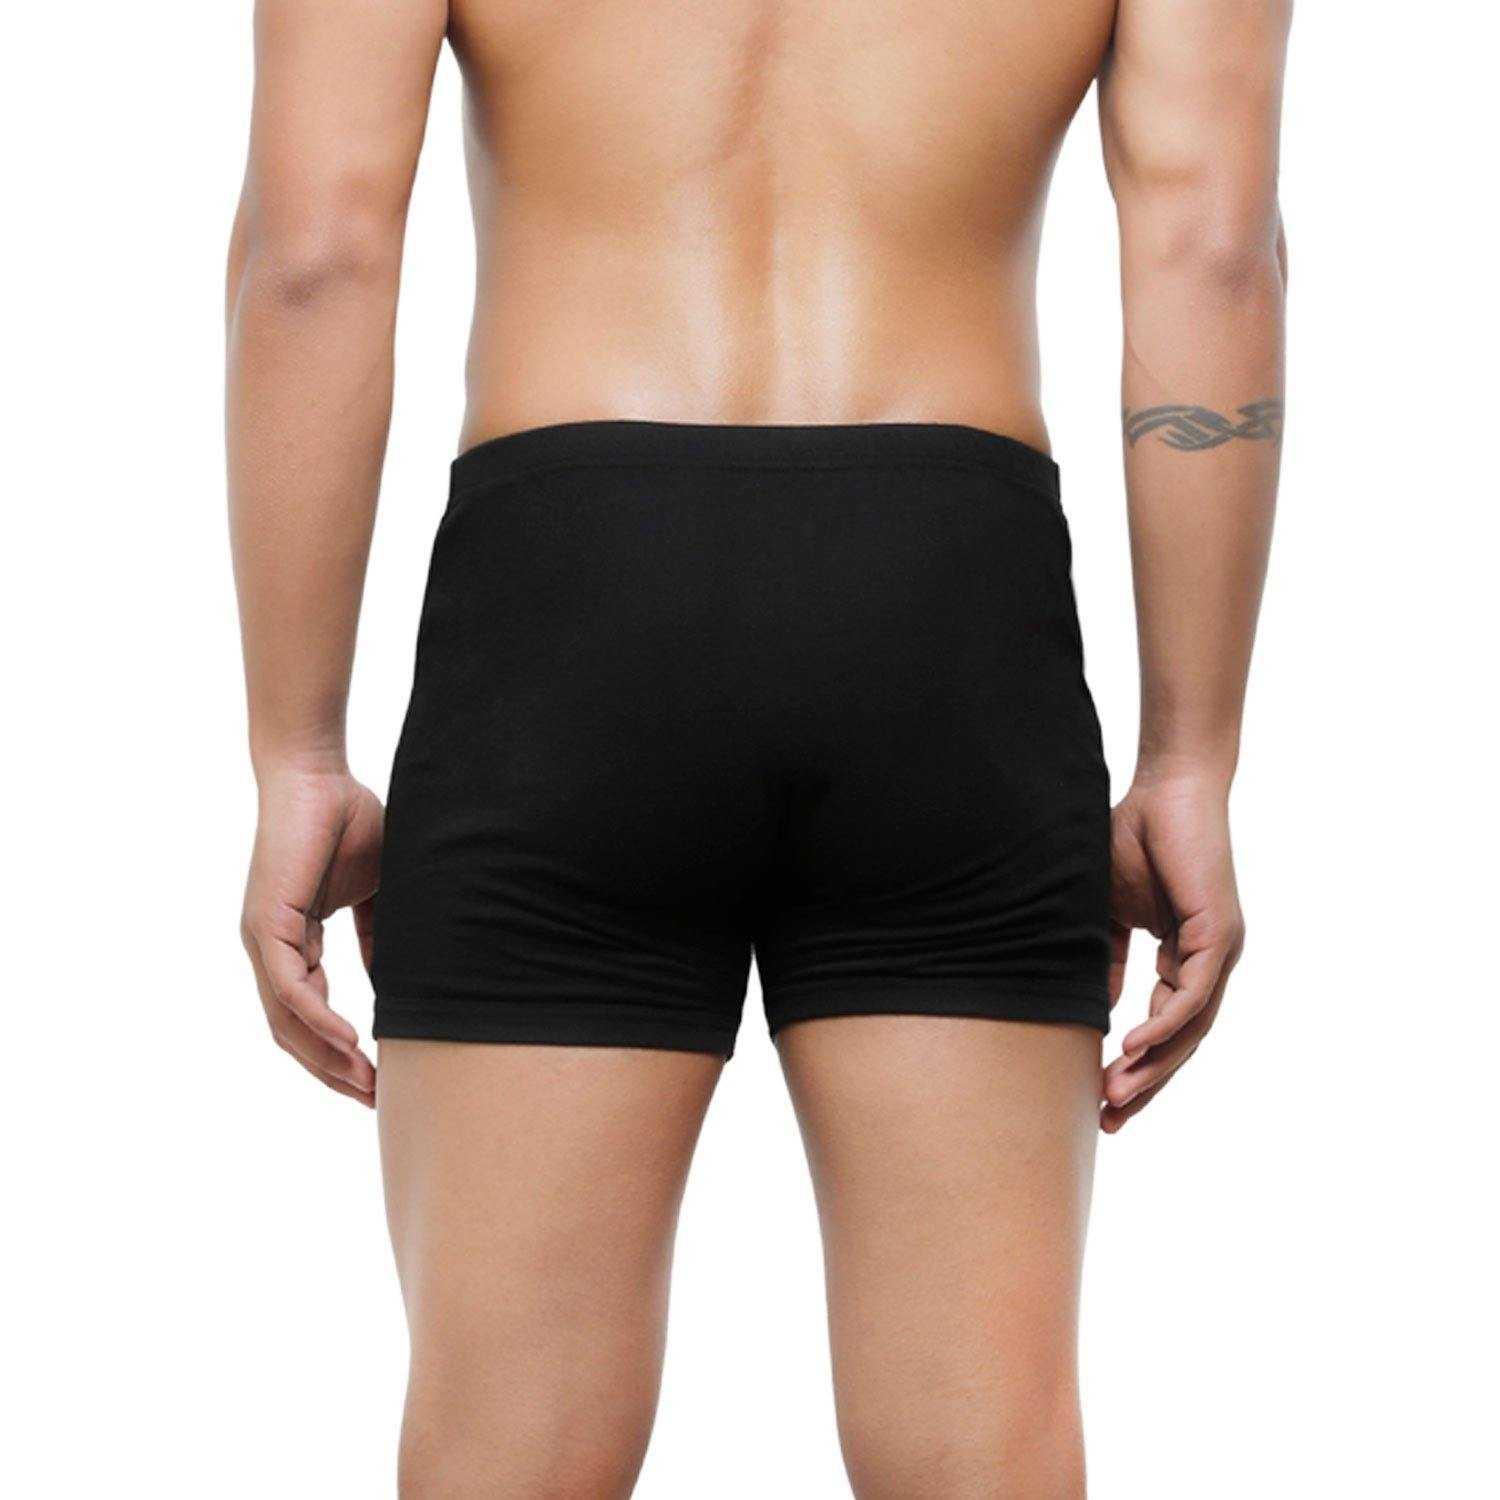 Men's Mid-Rise Classic Cotton Trunks  - Pack Of 2